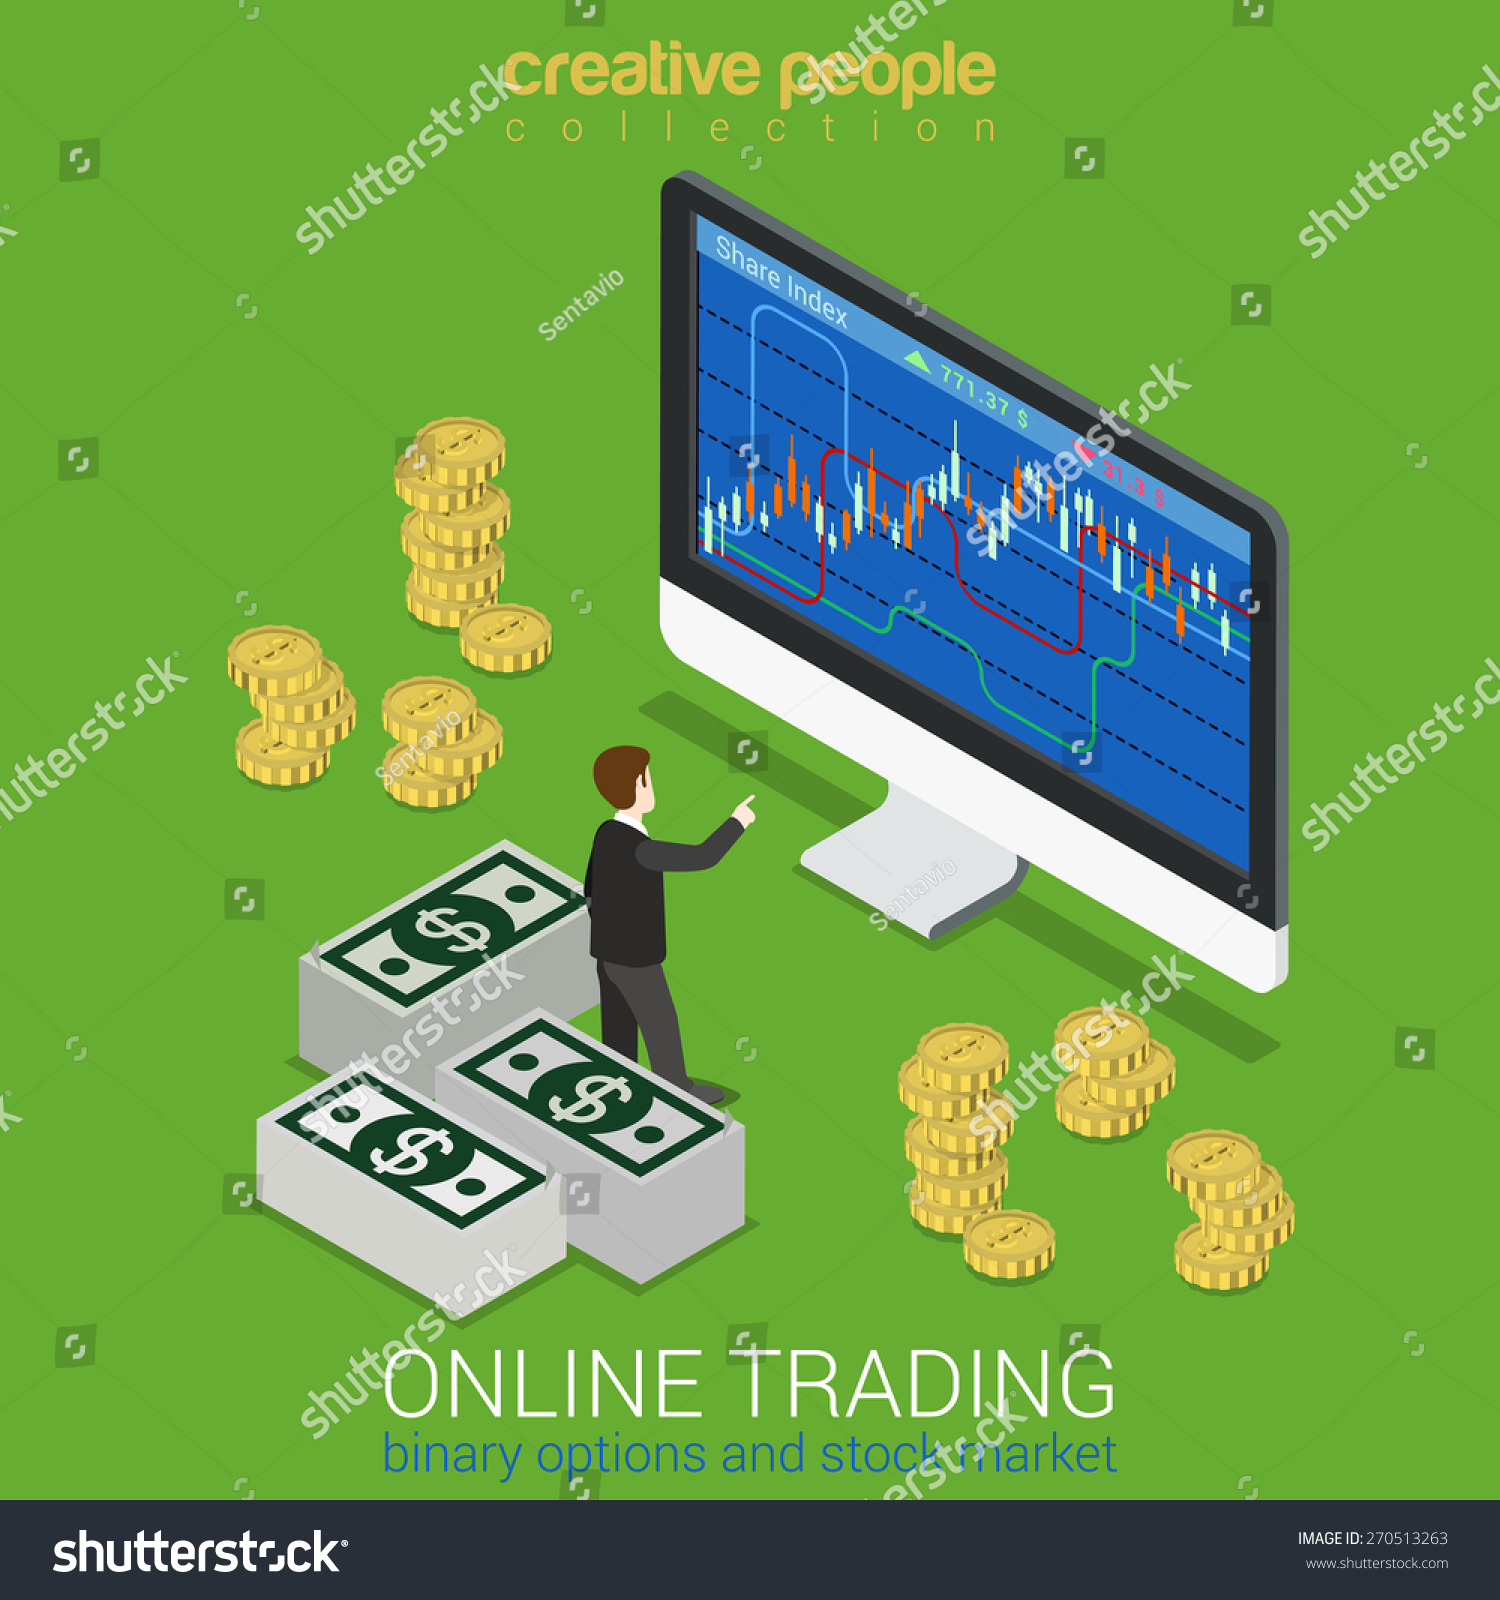 Binary options markets trade